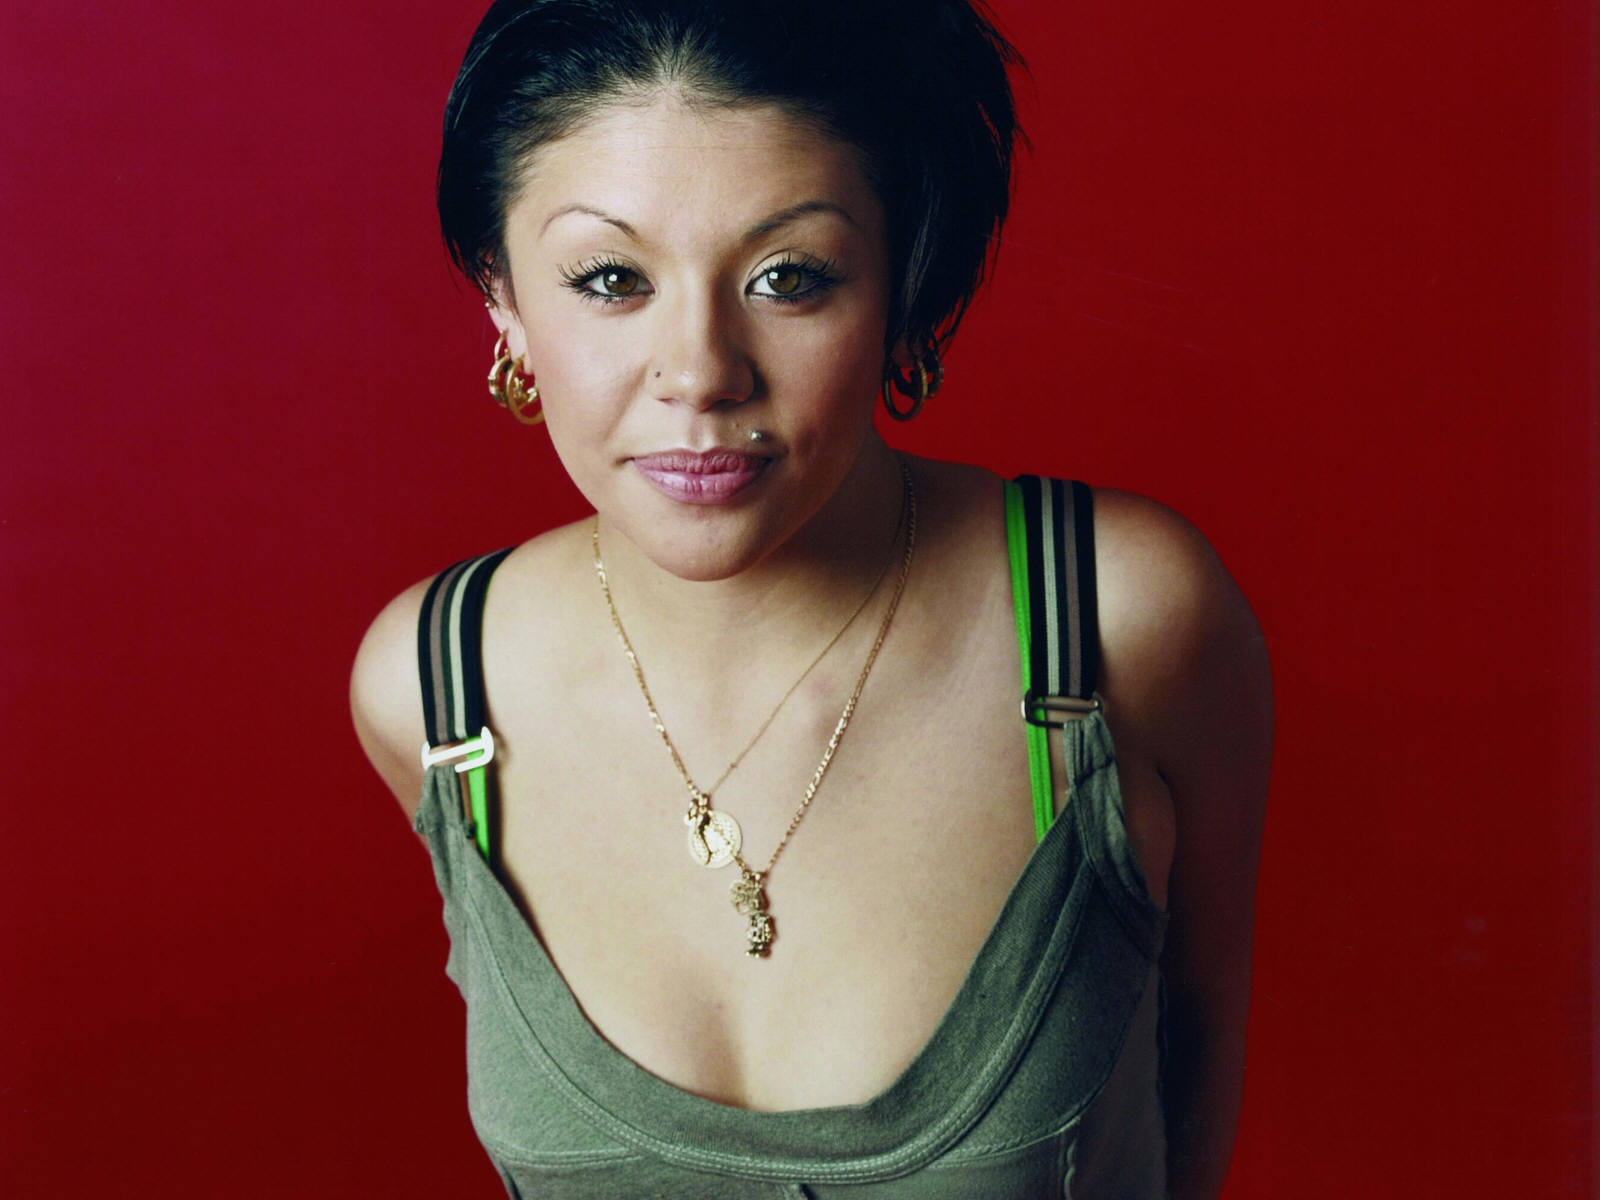 Mutya Buena nudes (89 foto and video), Pussy, Is a cute, Feet, braless 2018